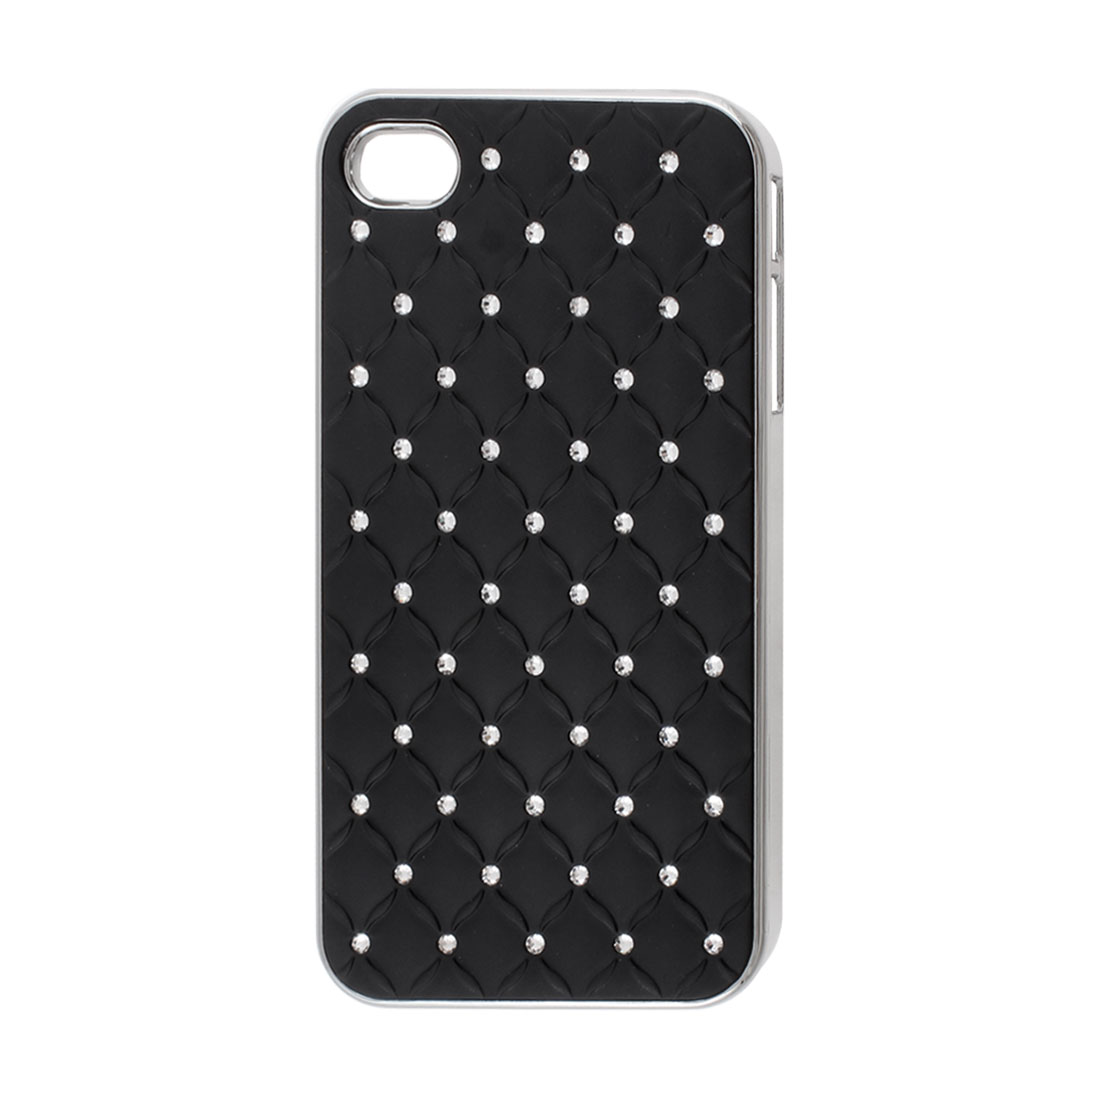 Black Faux Leather Coated Rhinestone Hard Back Case Cover for iPhone 4 4G